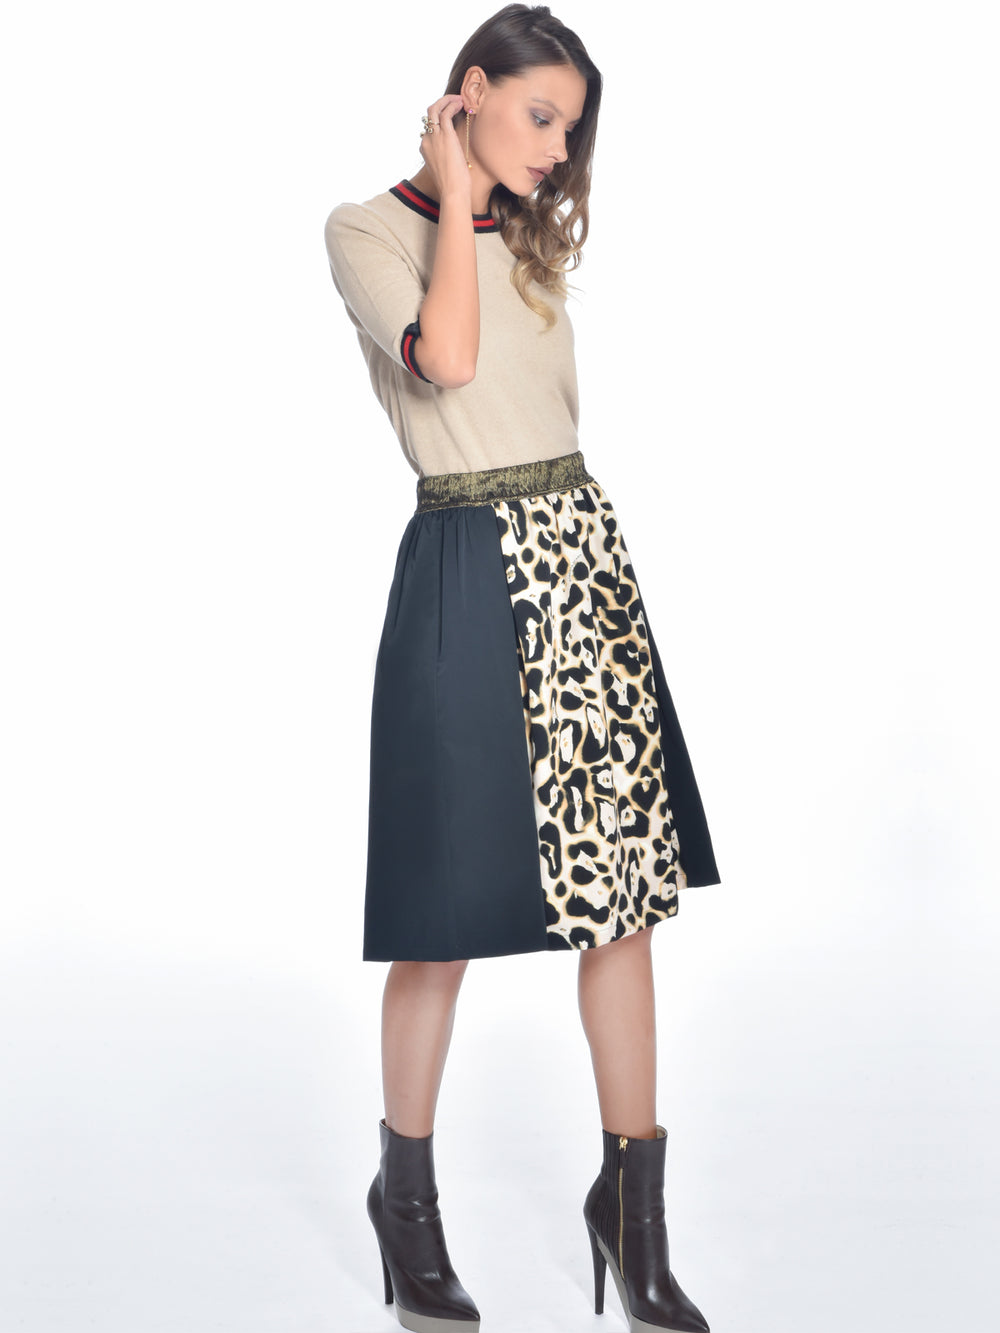 Cheetah Paneled Midi Skirt, ROBERTA SCARPA - elilhaam.com